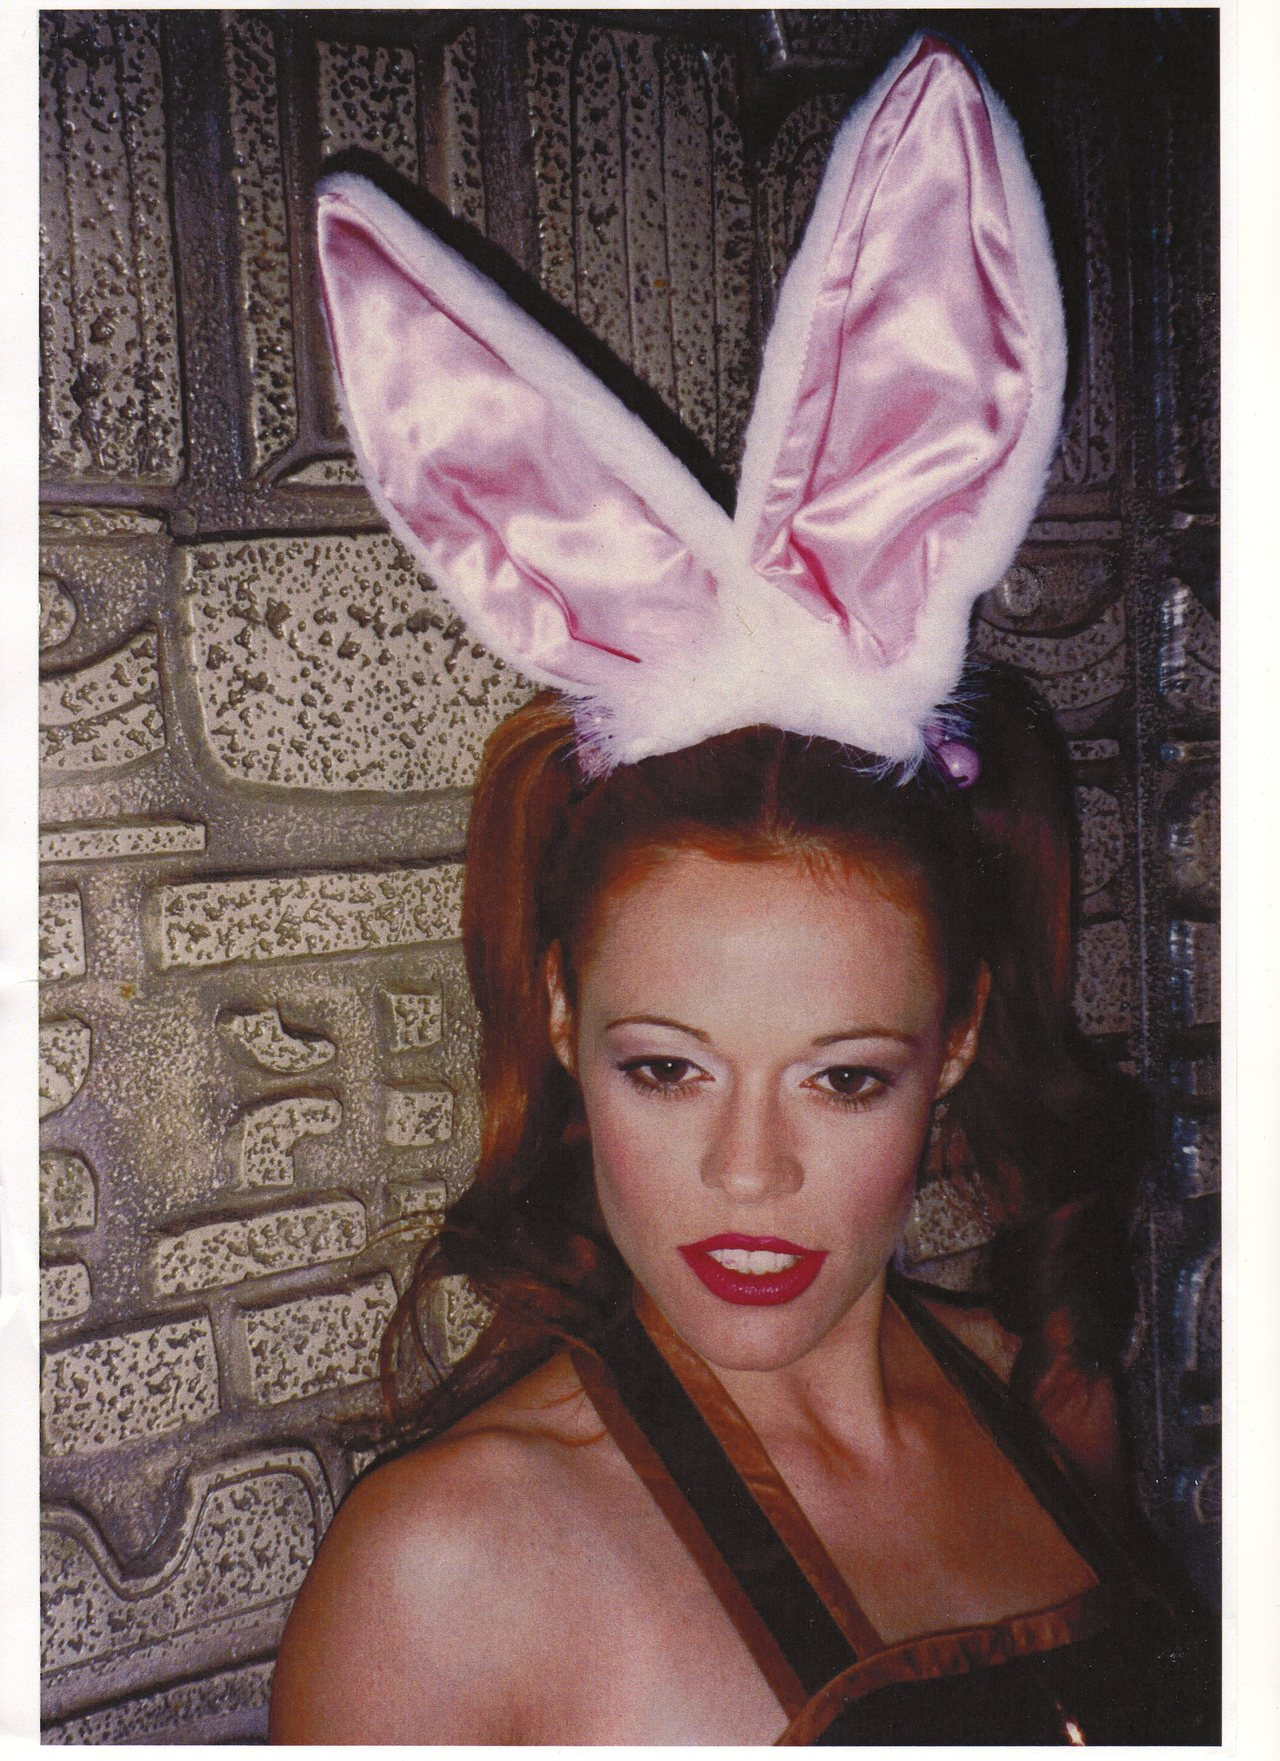 "1993 . tearing up Japan ""i was in the checkout line, checking out the mighty fine,by the time I got to the parking lot,I took home more than what I bought,your'e my tenderness,my chocolate drop,dont you ever let your good loving stop""- lady miss kier …www.ladykier.com      http://www.mixcloud.com/ladykier/        https://www.facebook.com/pages/miss-Lady-Kier/296808489716?fref=ts      photo by: James Mona  backstage Tokyo 1994"